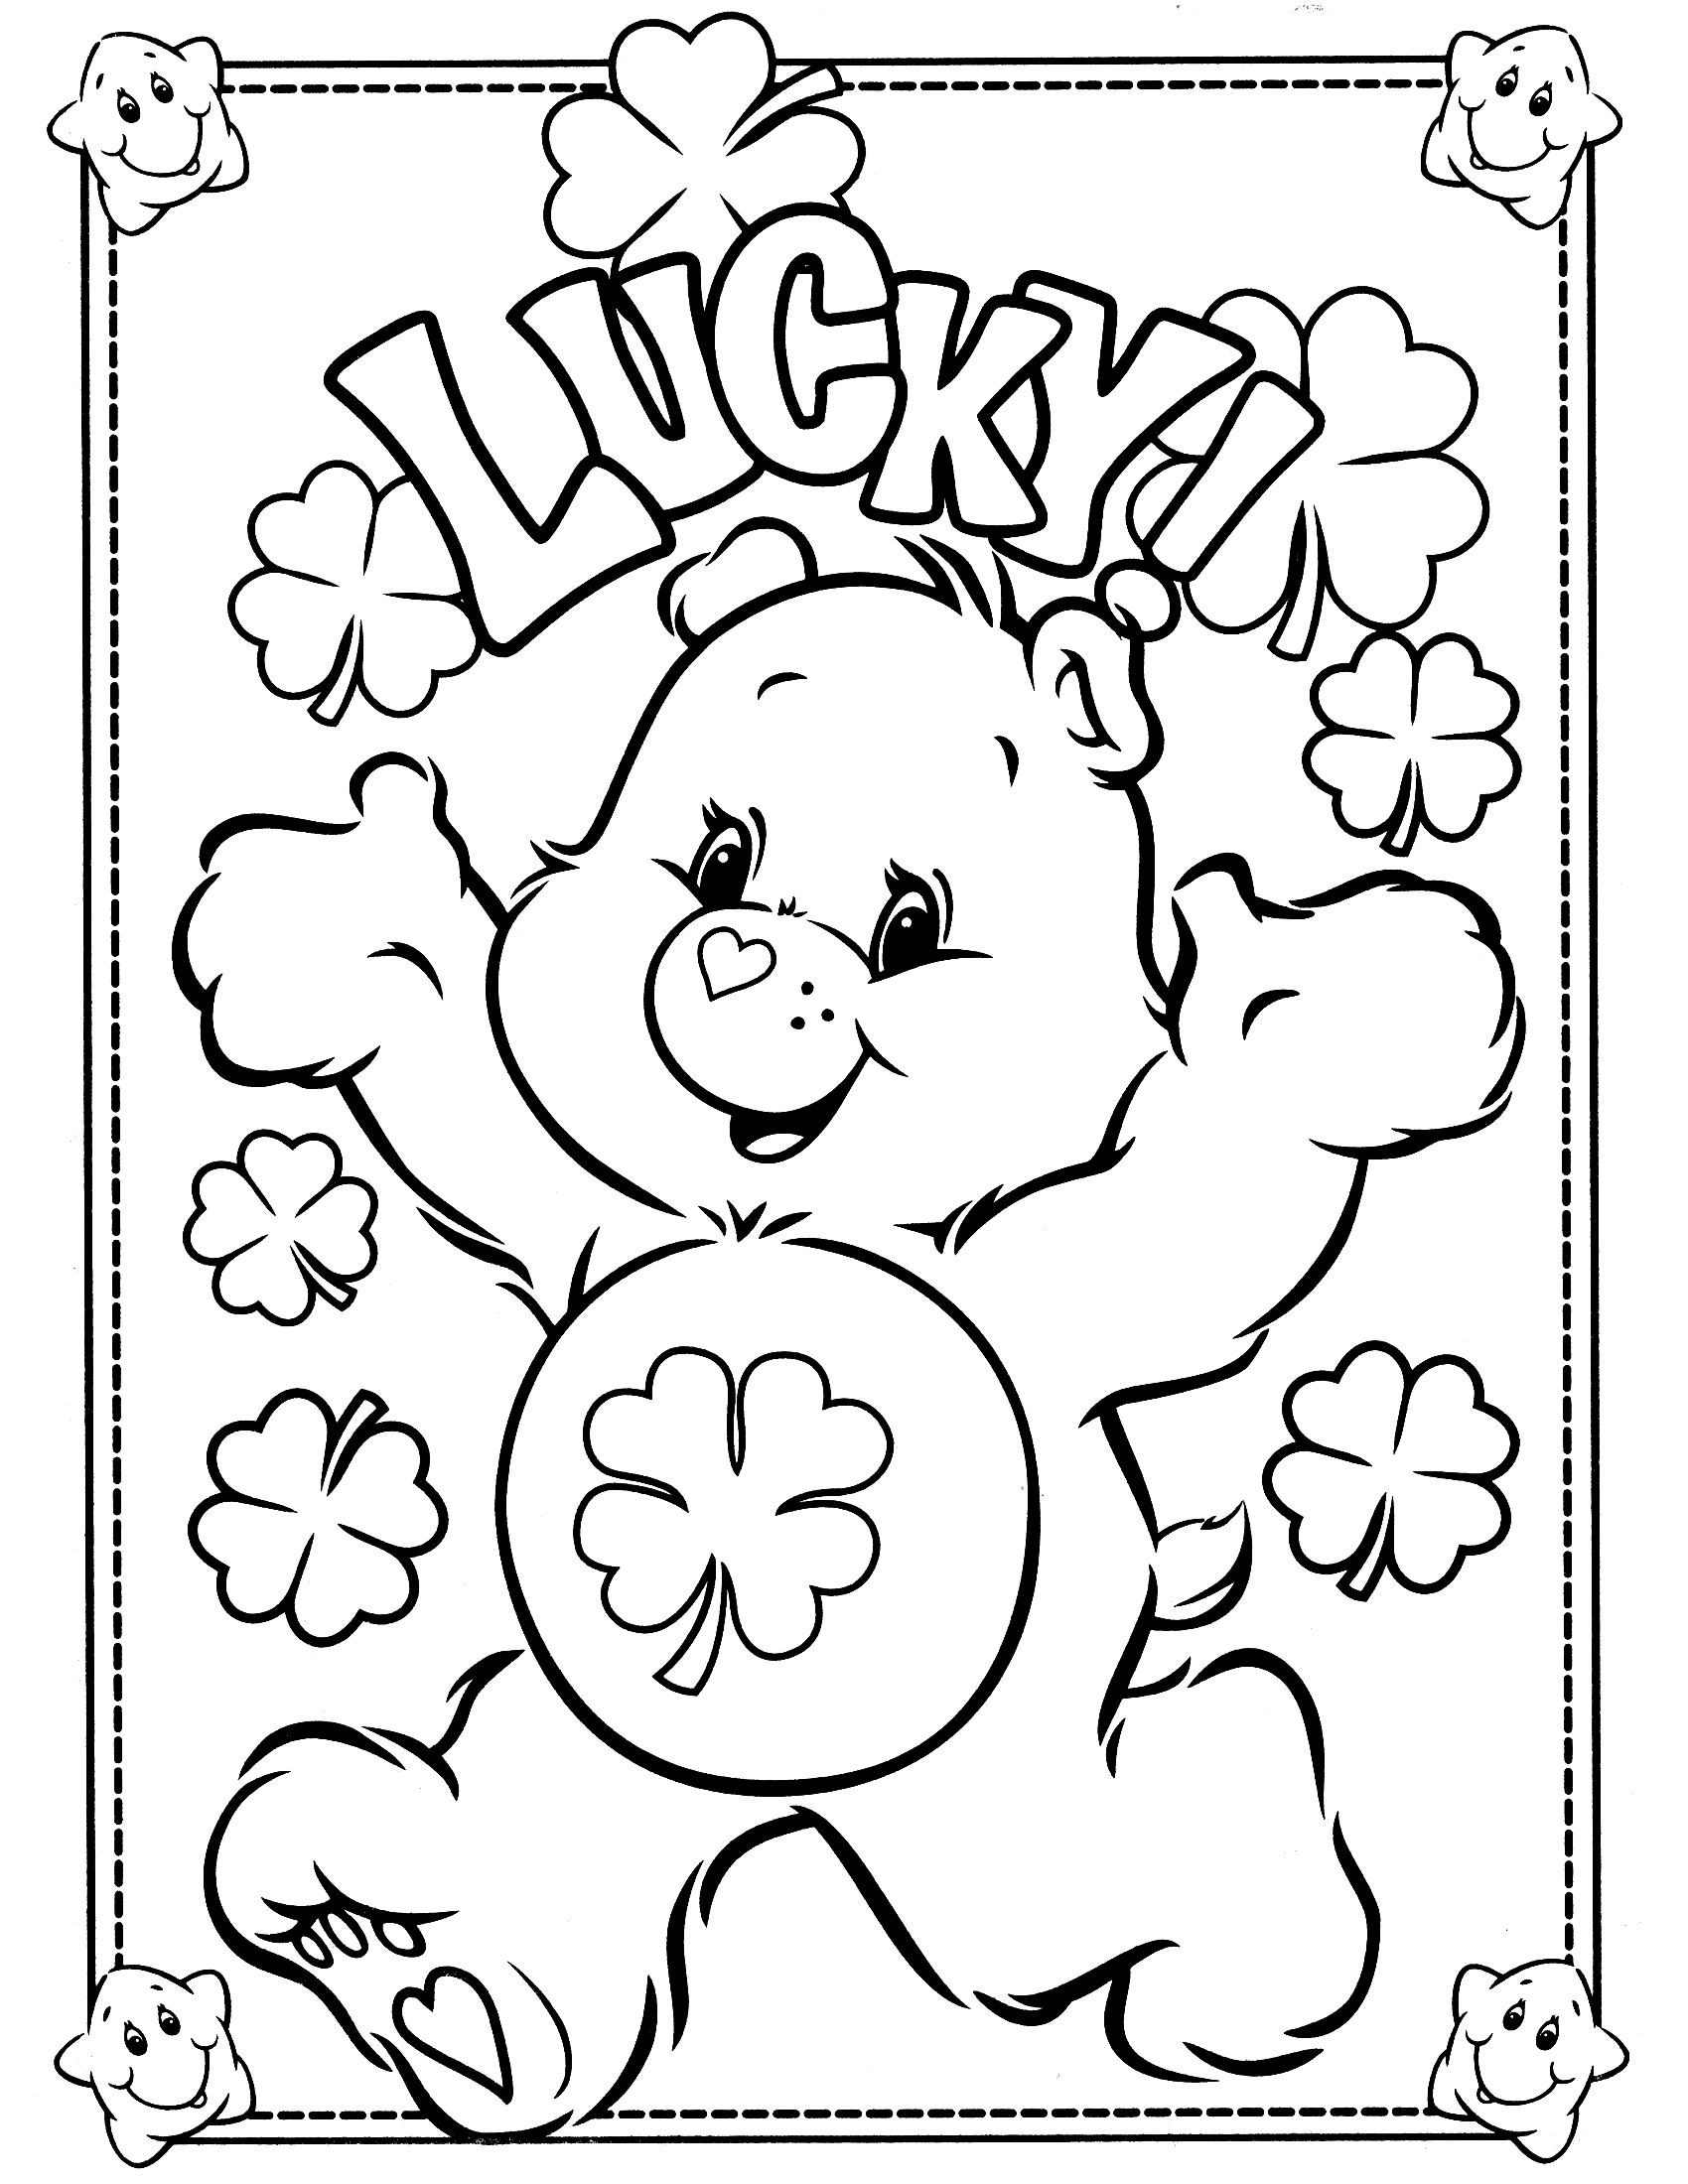 Free printable care bear coloring pages for kids for Free color page printables